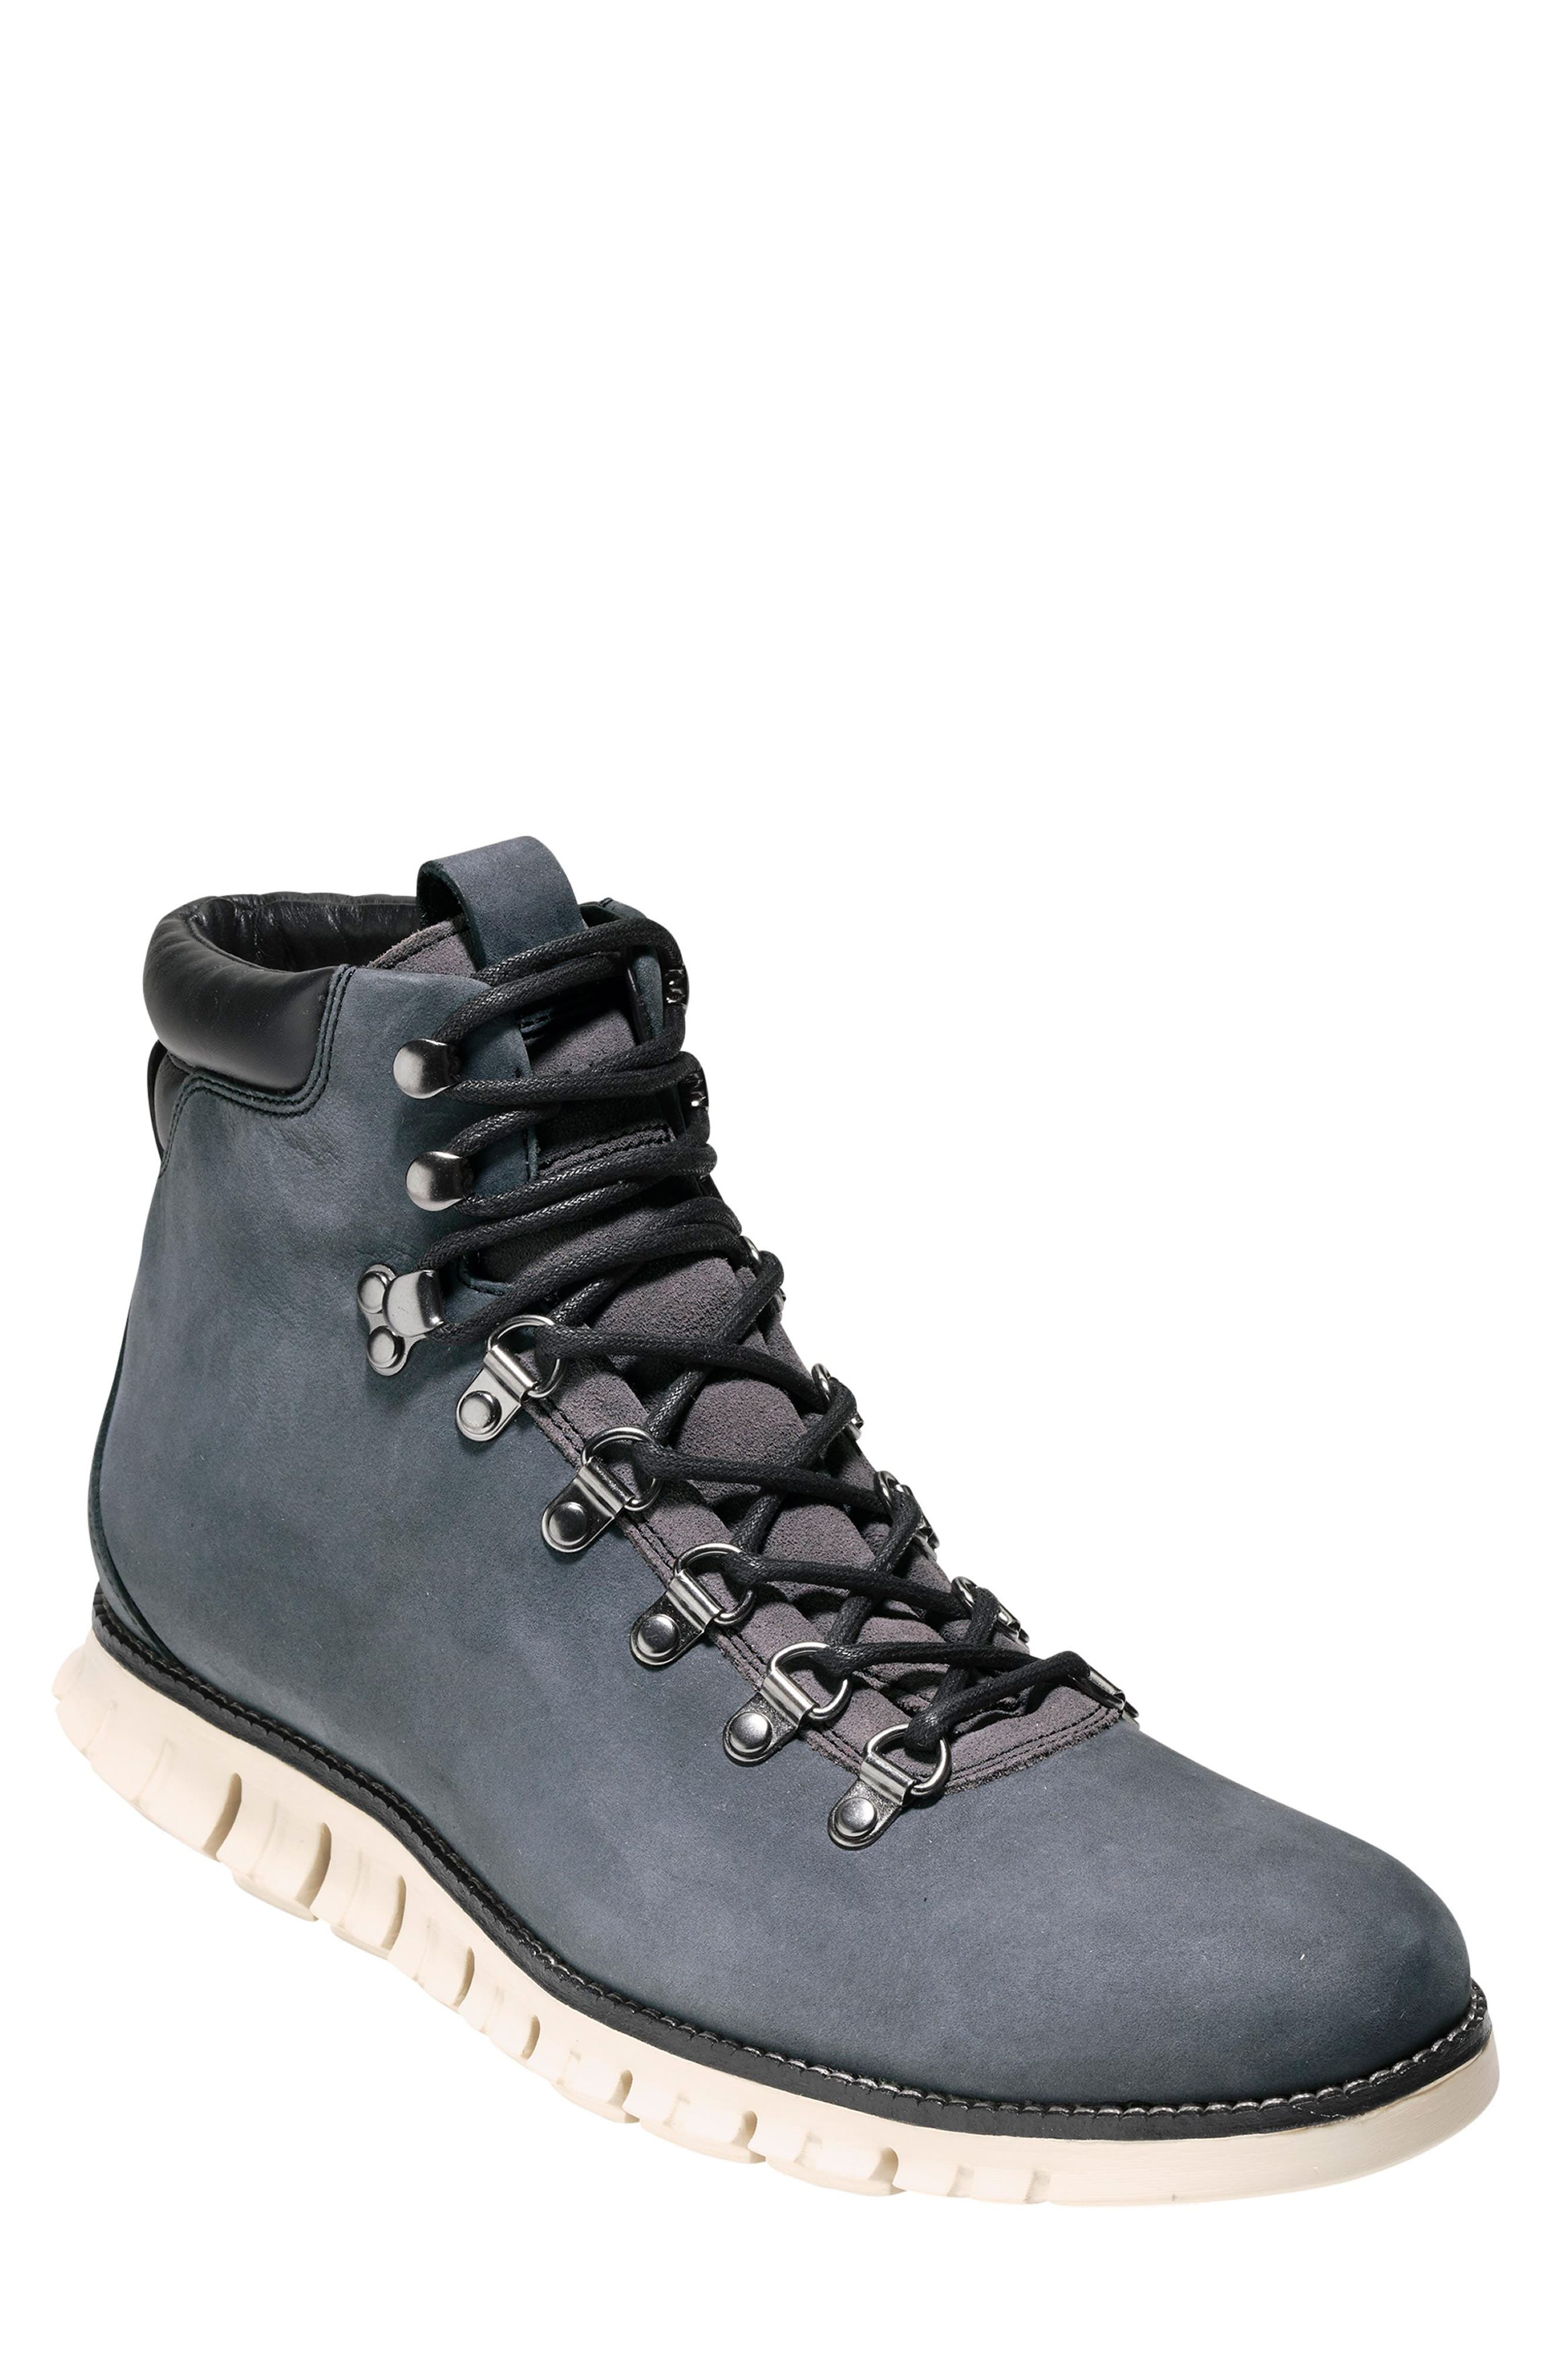 ZeroGrand Water Resistant Hiker Boot,                             Main thumbnail 1, color,                             GREY/ IVY LEATHER